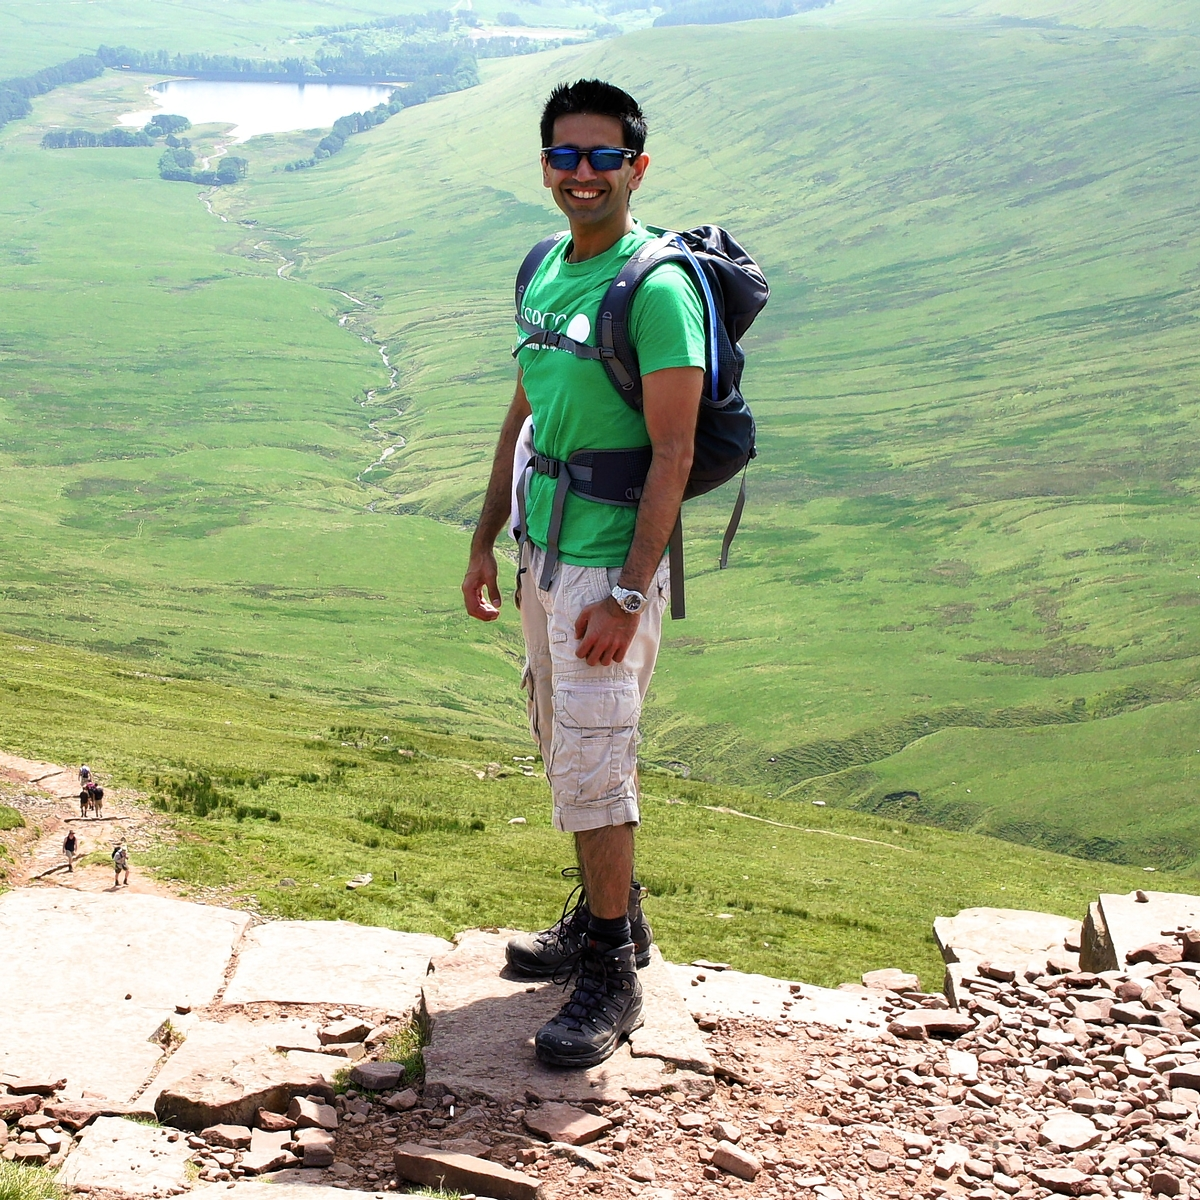 Pritesh at Brecon Beacons National Park.